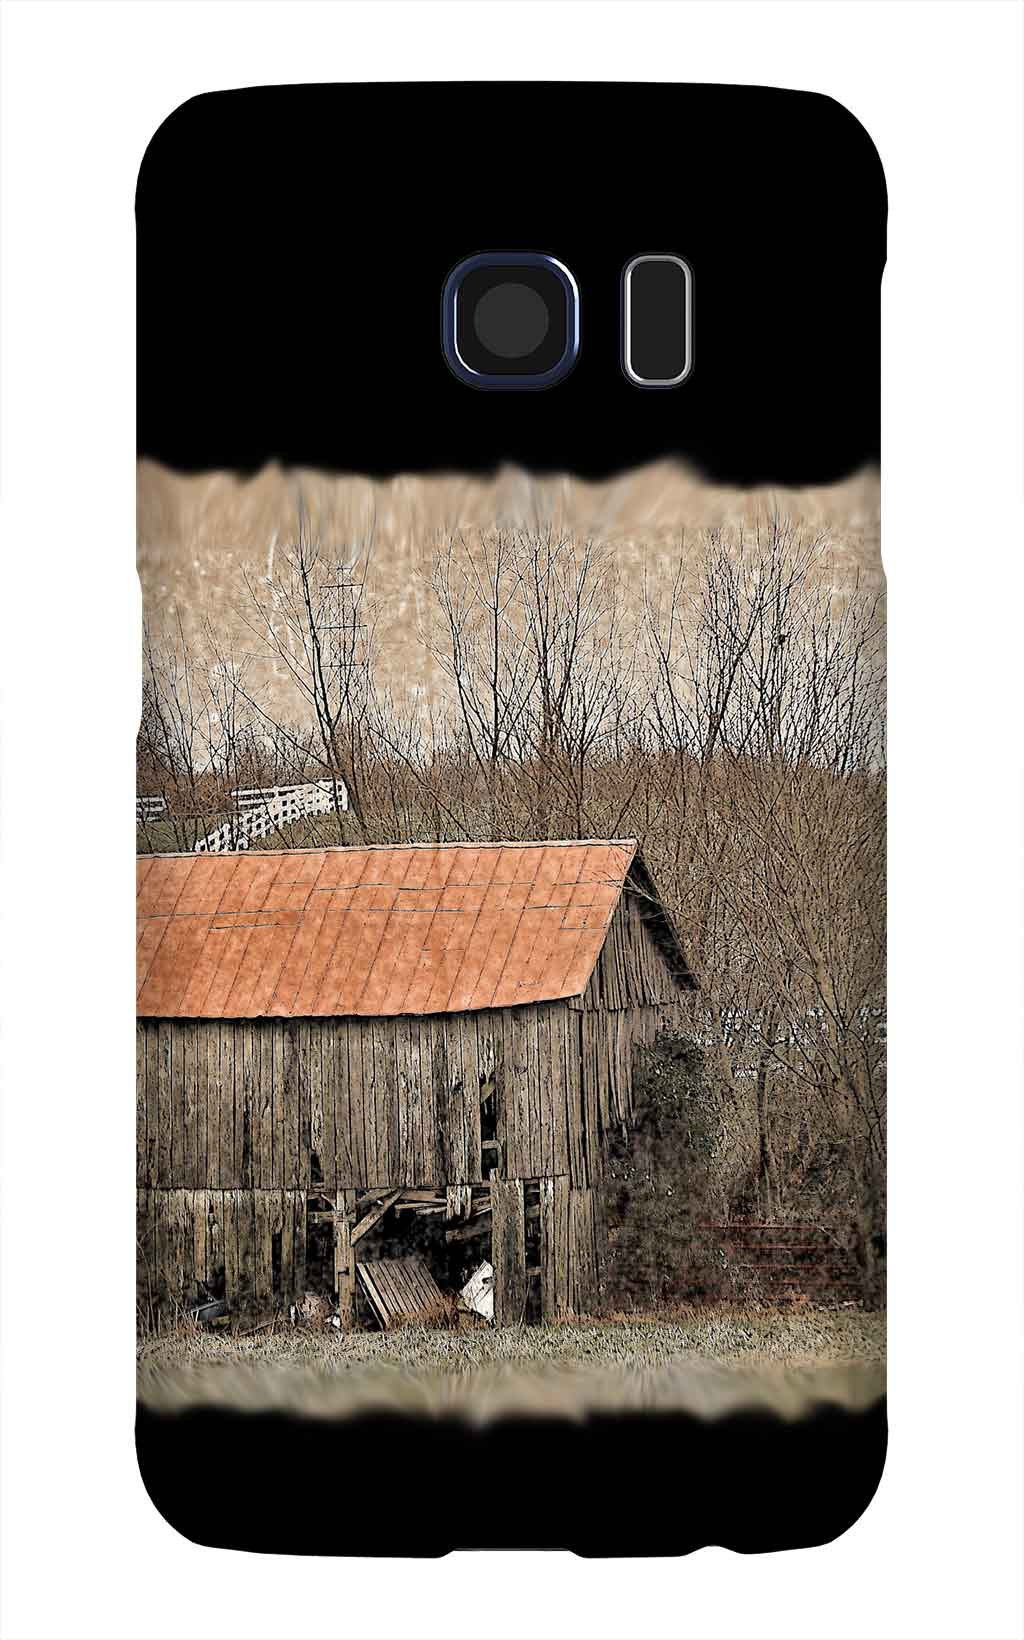 Product, Cellphone Case: Hot Tin Roof – Weathered barn with red tin roof and white picket fence